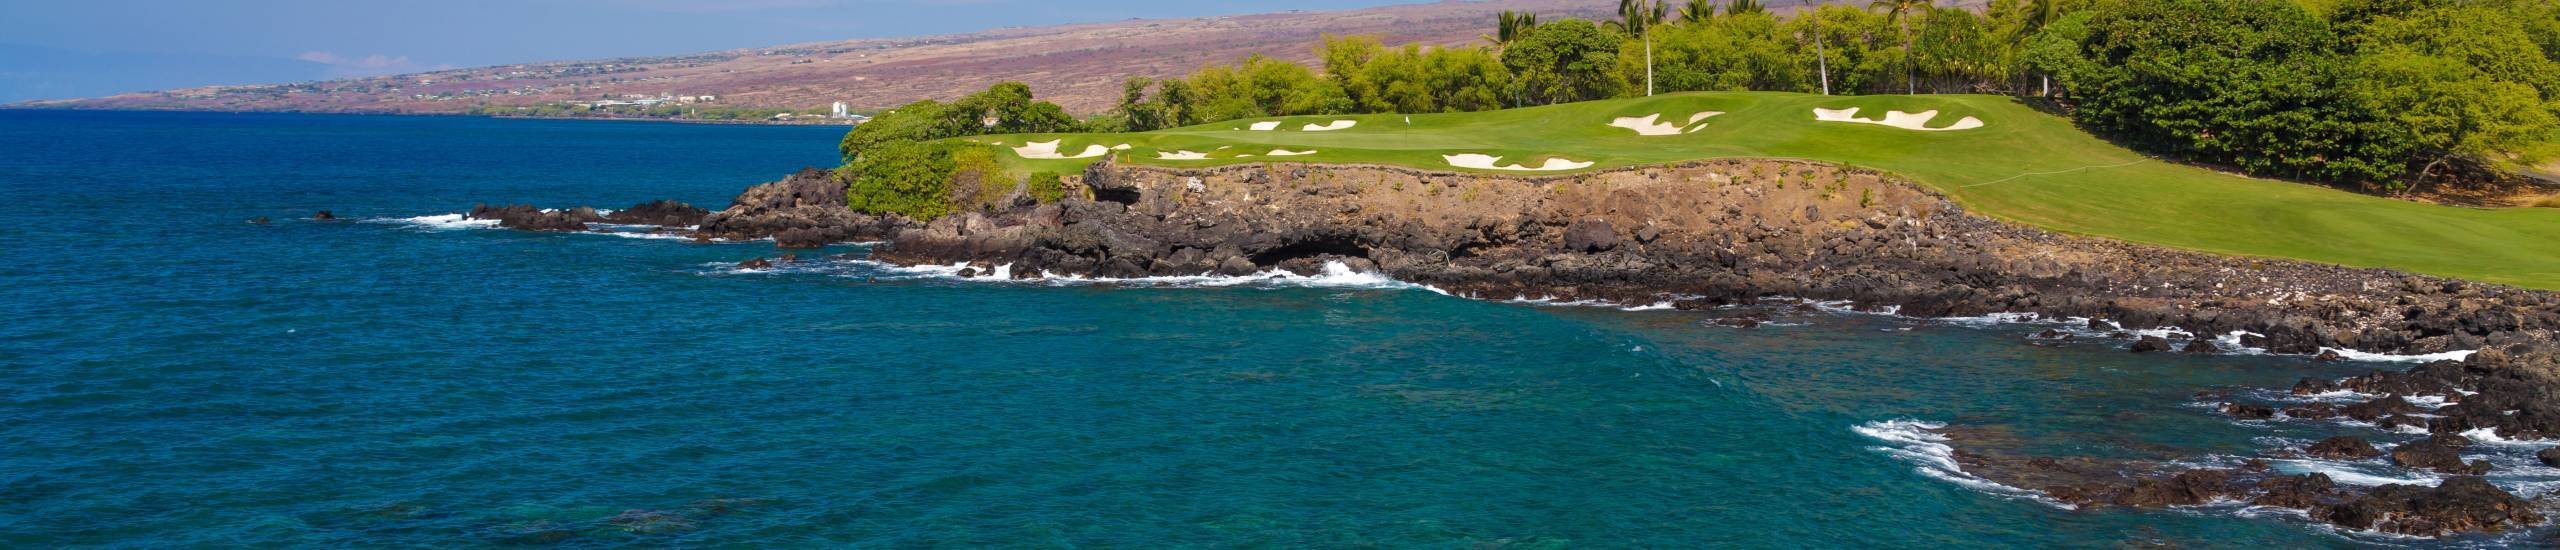 Mauna Kea Golf Course hole from the ocean